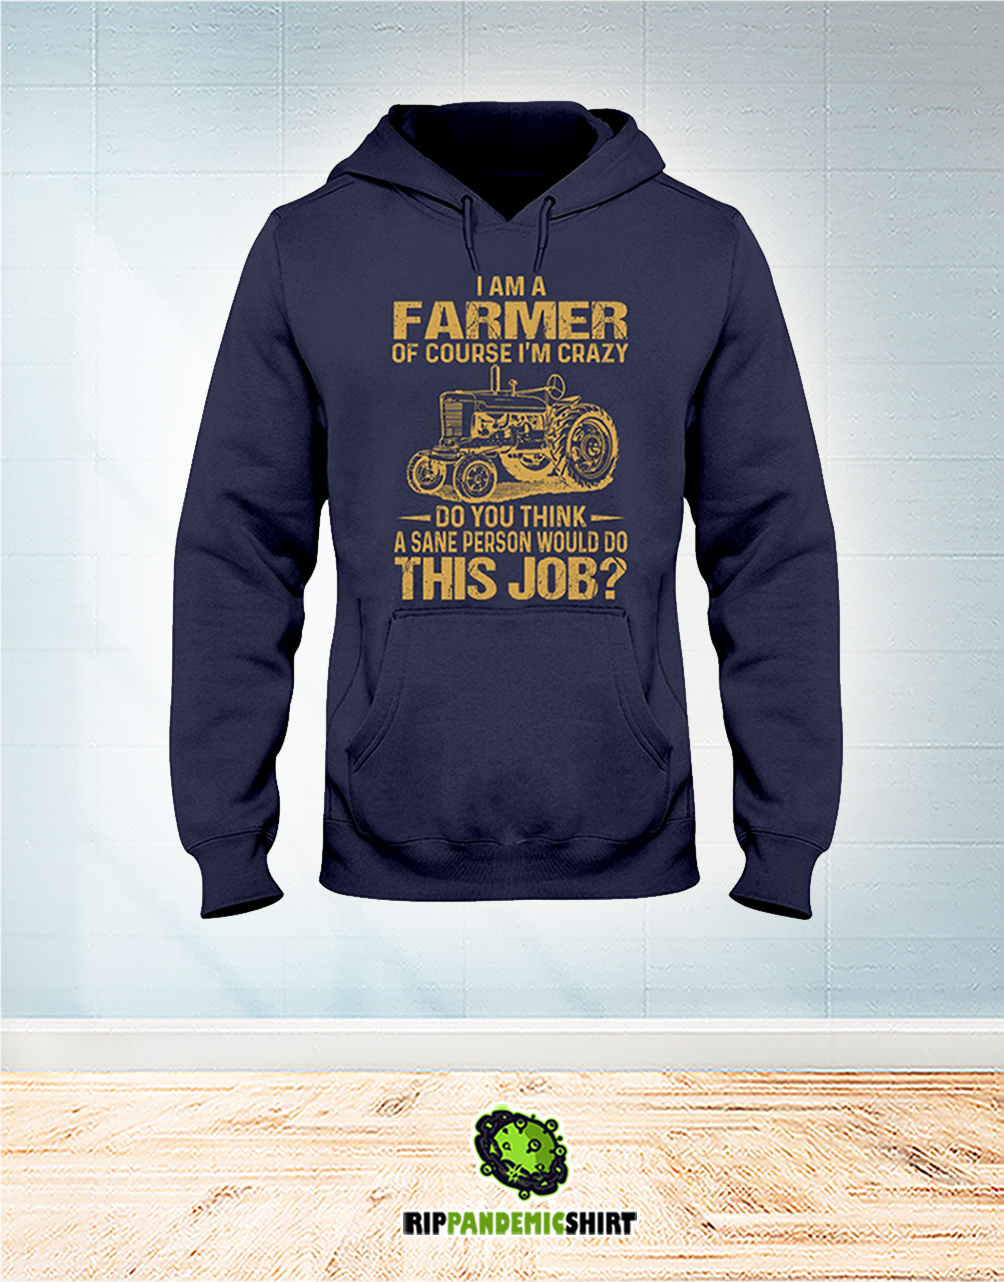 I Am A Farmer Of Course I'm Crazy Do You Think A Sane Person Would Do This Job hoodie